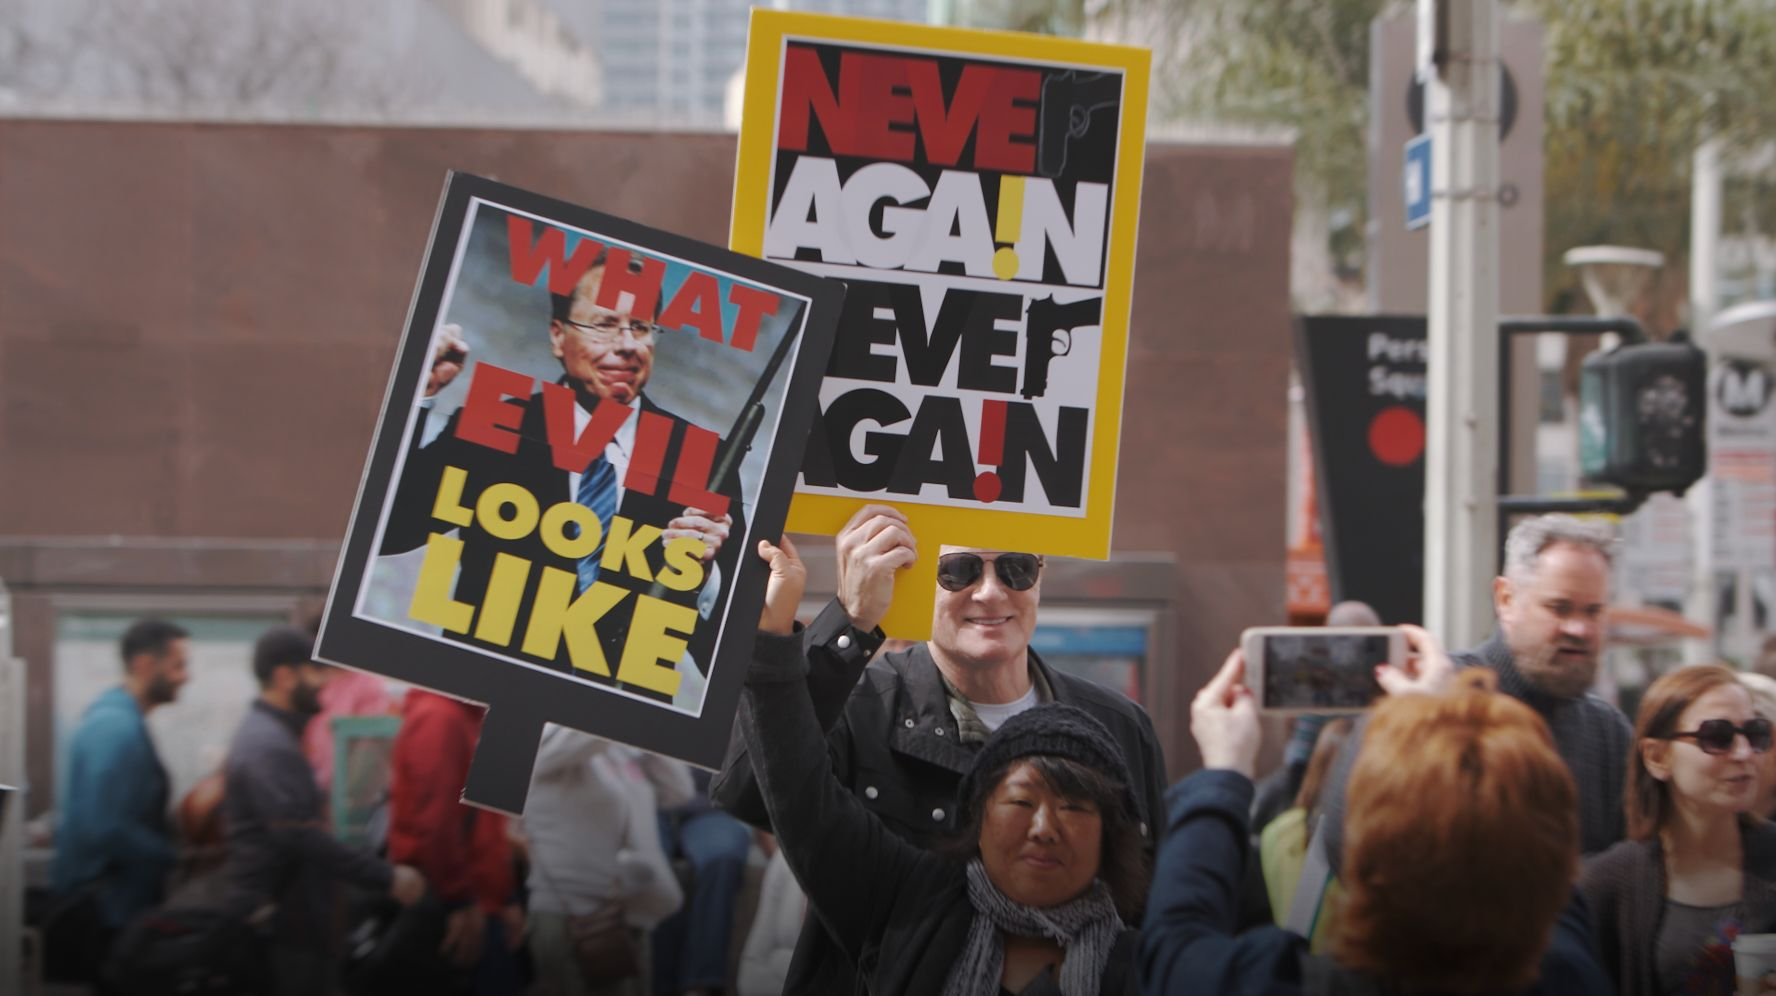 Support for gun reform has risen since Parkland yet Congress is at a standstill